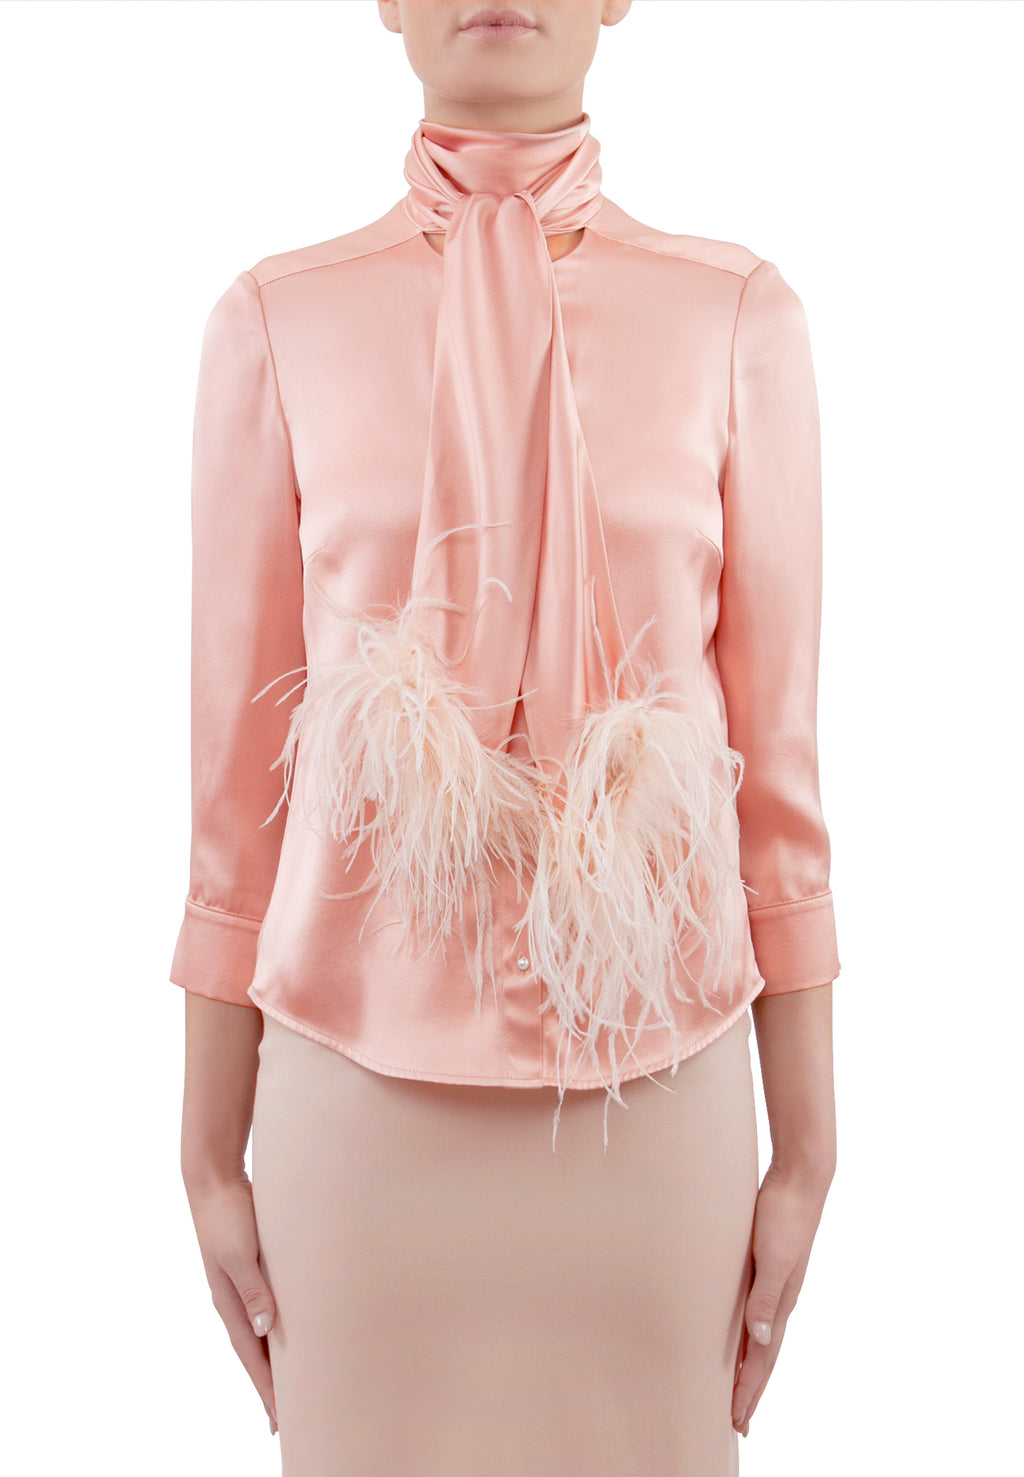 Parisian Romance and Ostrich Feather Silk Top